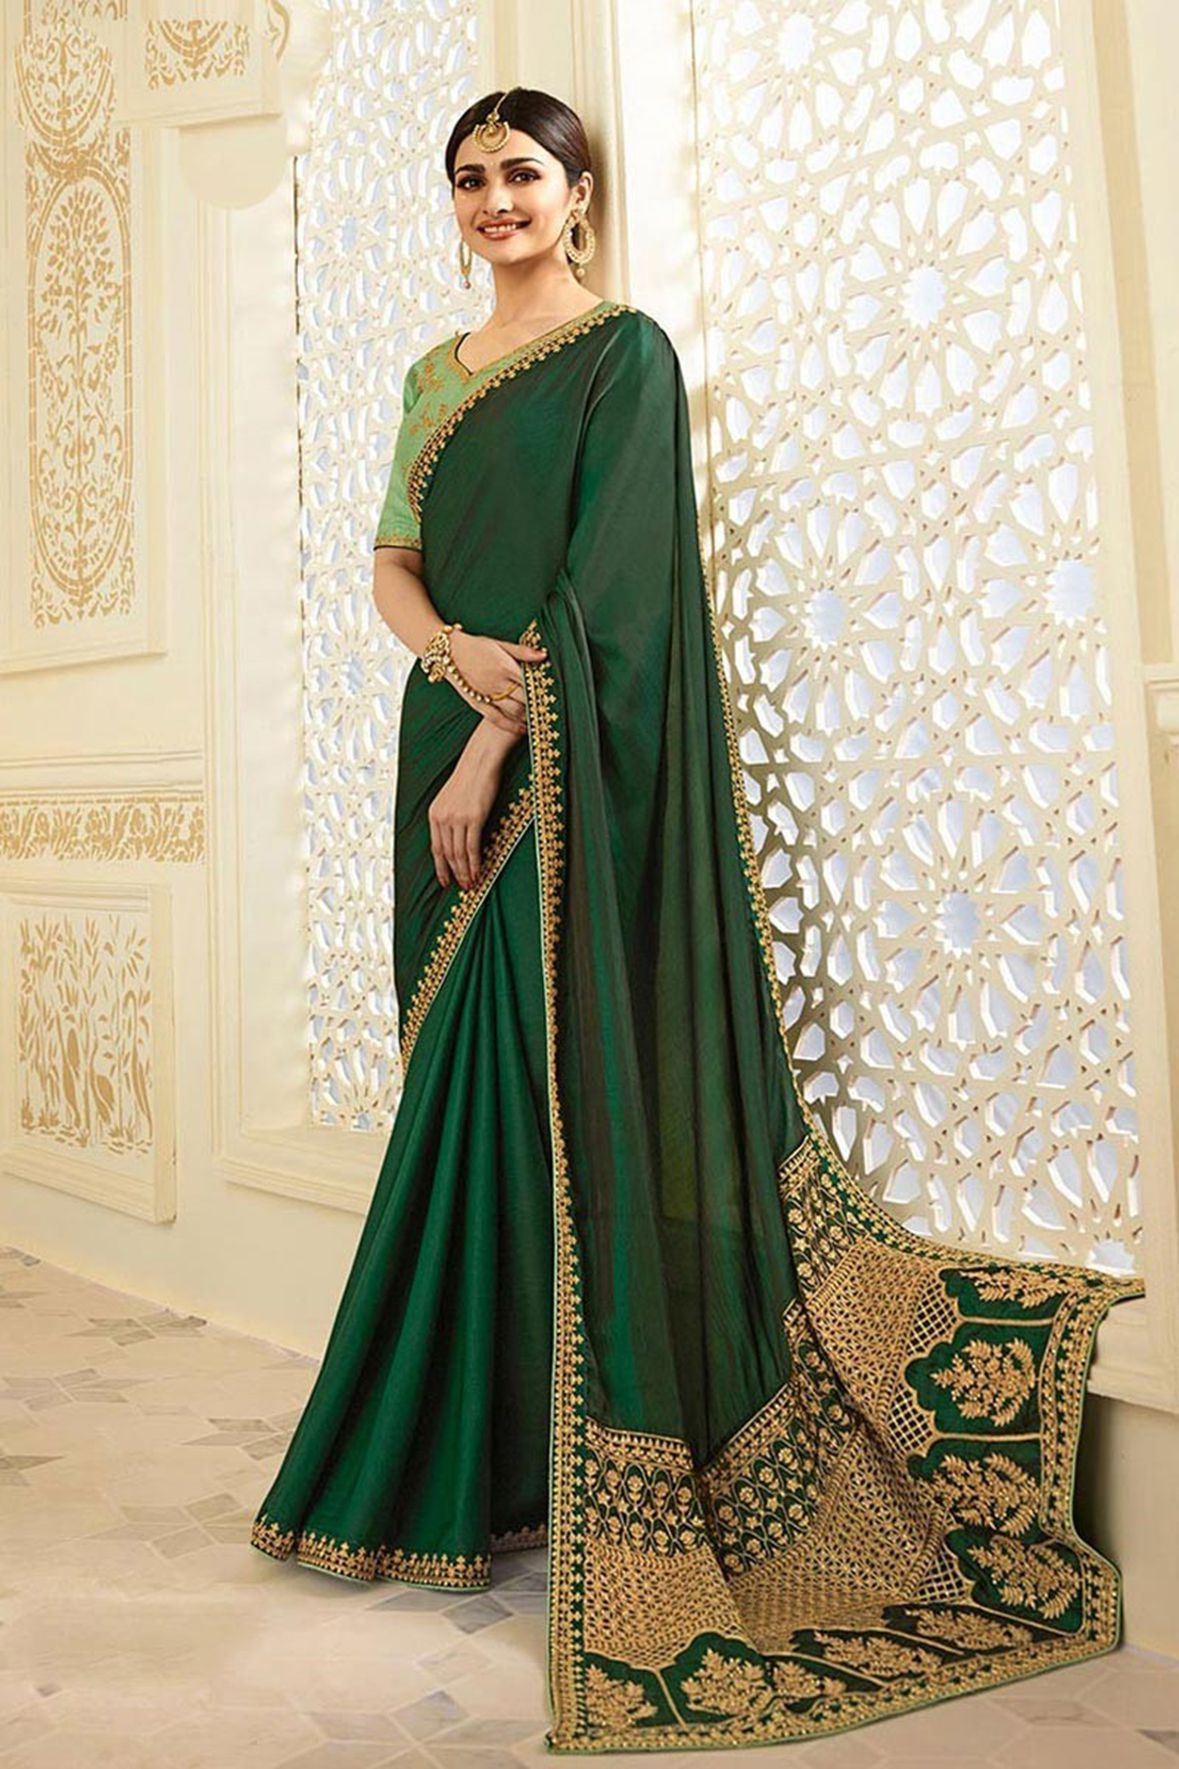 Sasimo Green Silk Crepe Saree